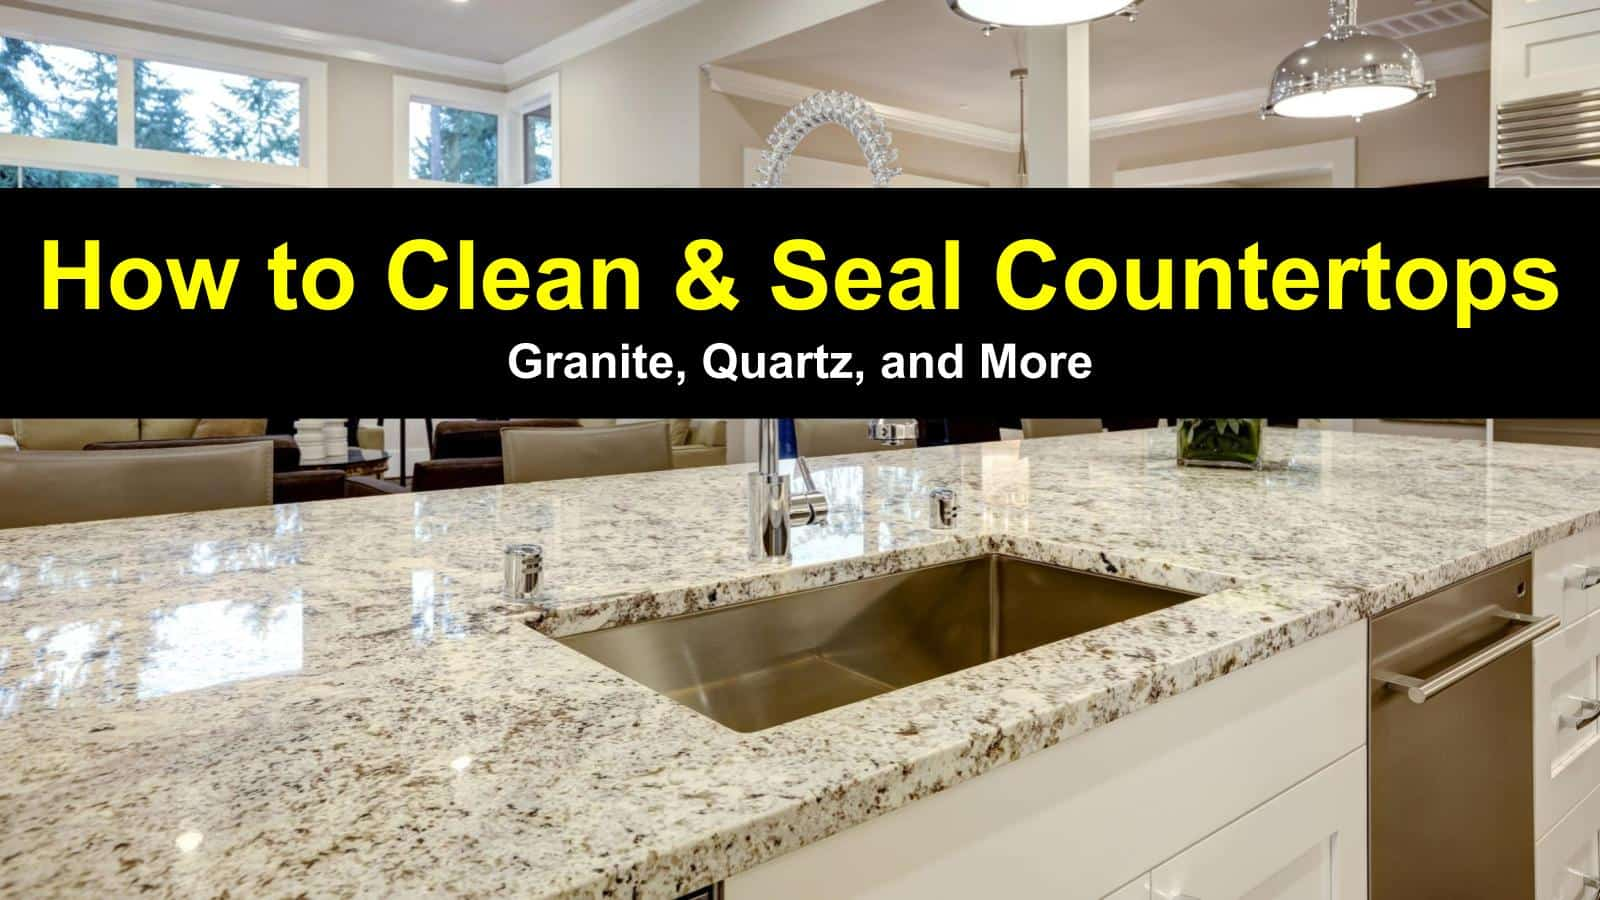 Natural Way To Clean Granite Countertops How To Clean And Seal Countertops Granite Quartz And More